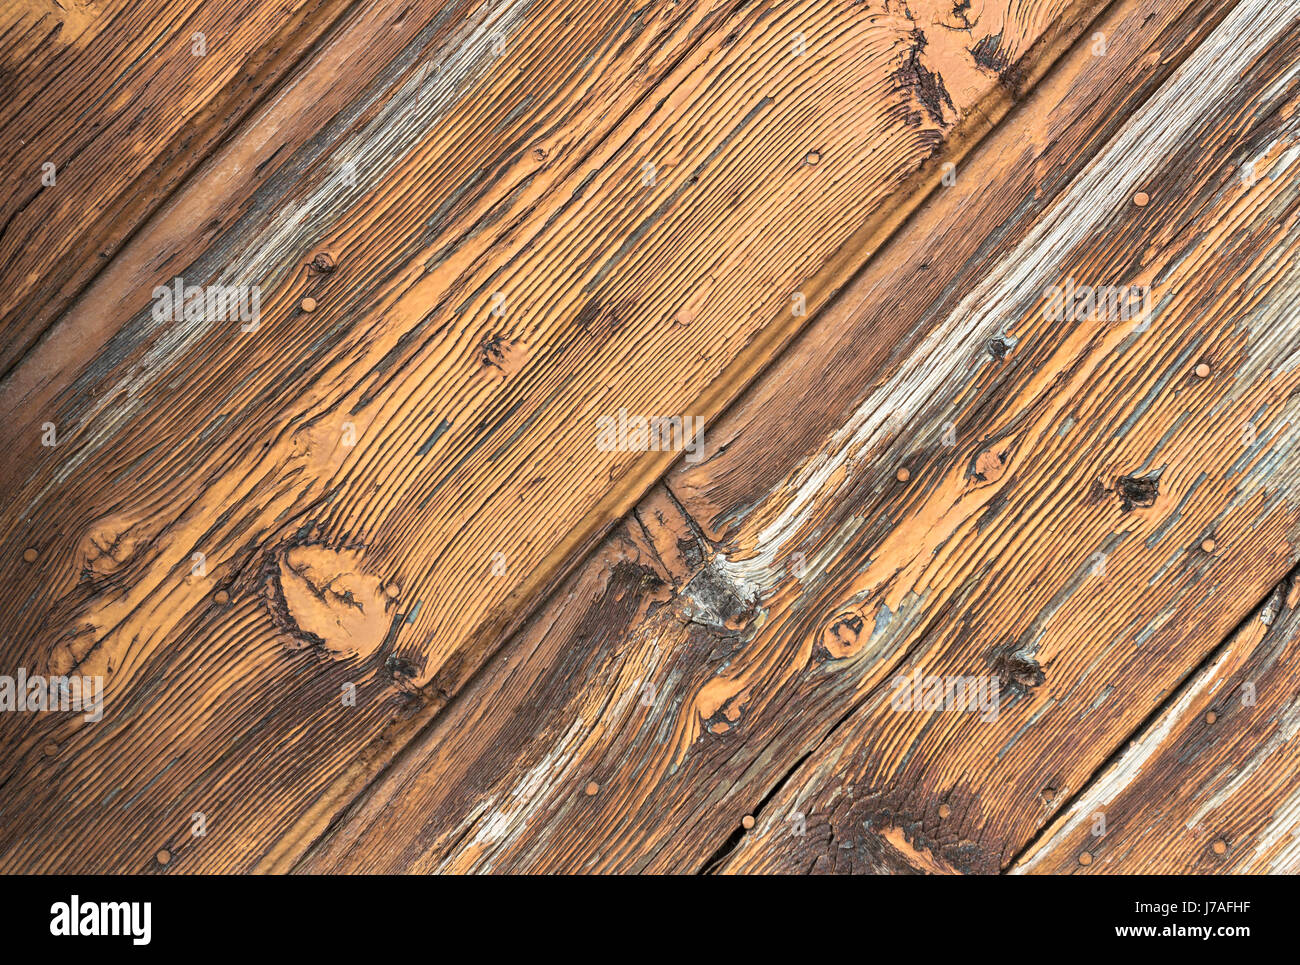 diagonal wooden old surface stockfotos diagonal wooden old surface bilder seite 3 alamy. Black Bedroom Furniture Sets. Home Design Ideas